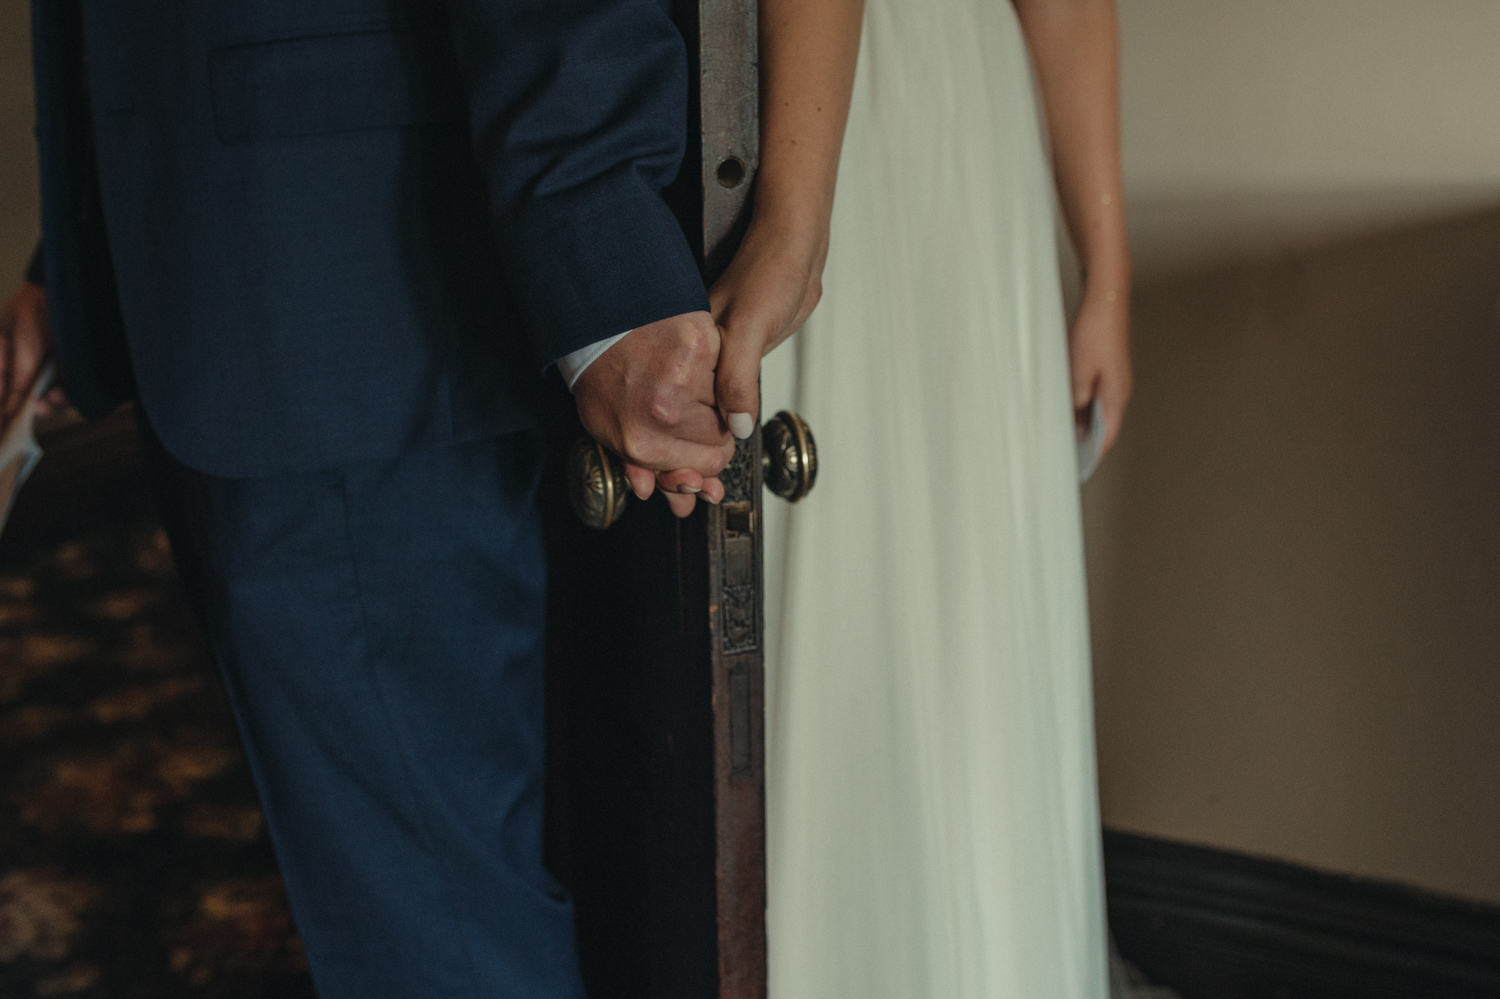 Wedgewood Sequoia Mansion wedding holding hands before the ceremony photo